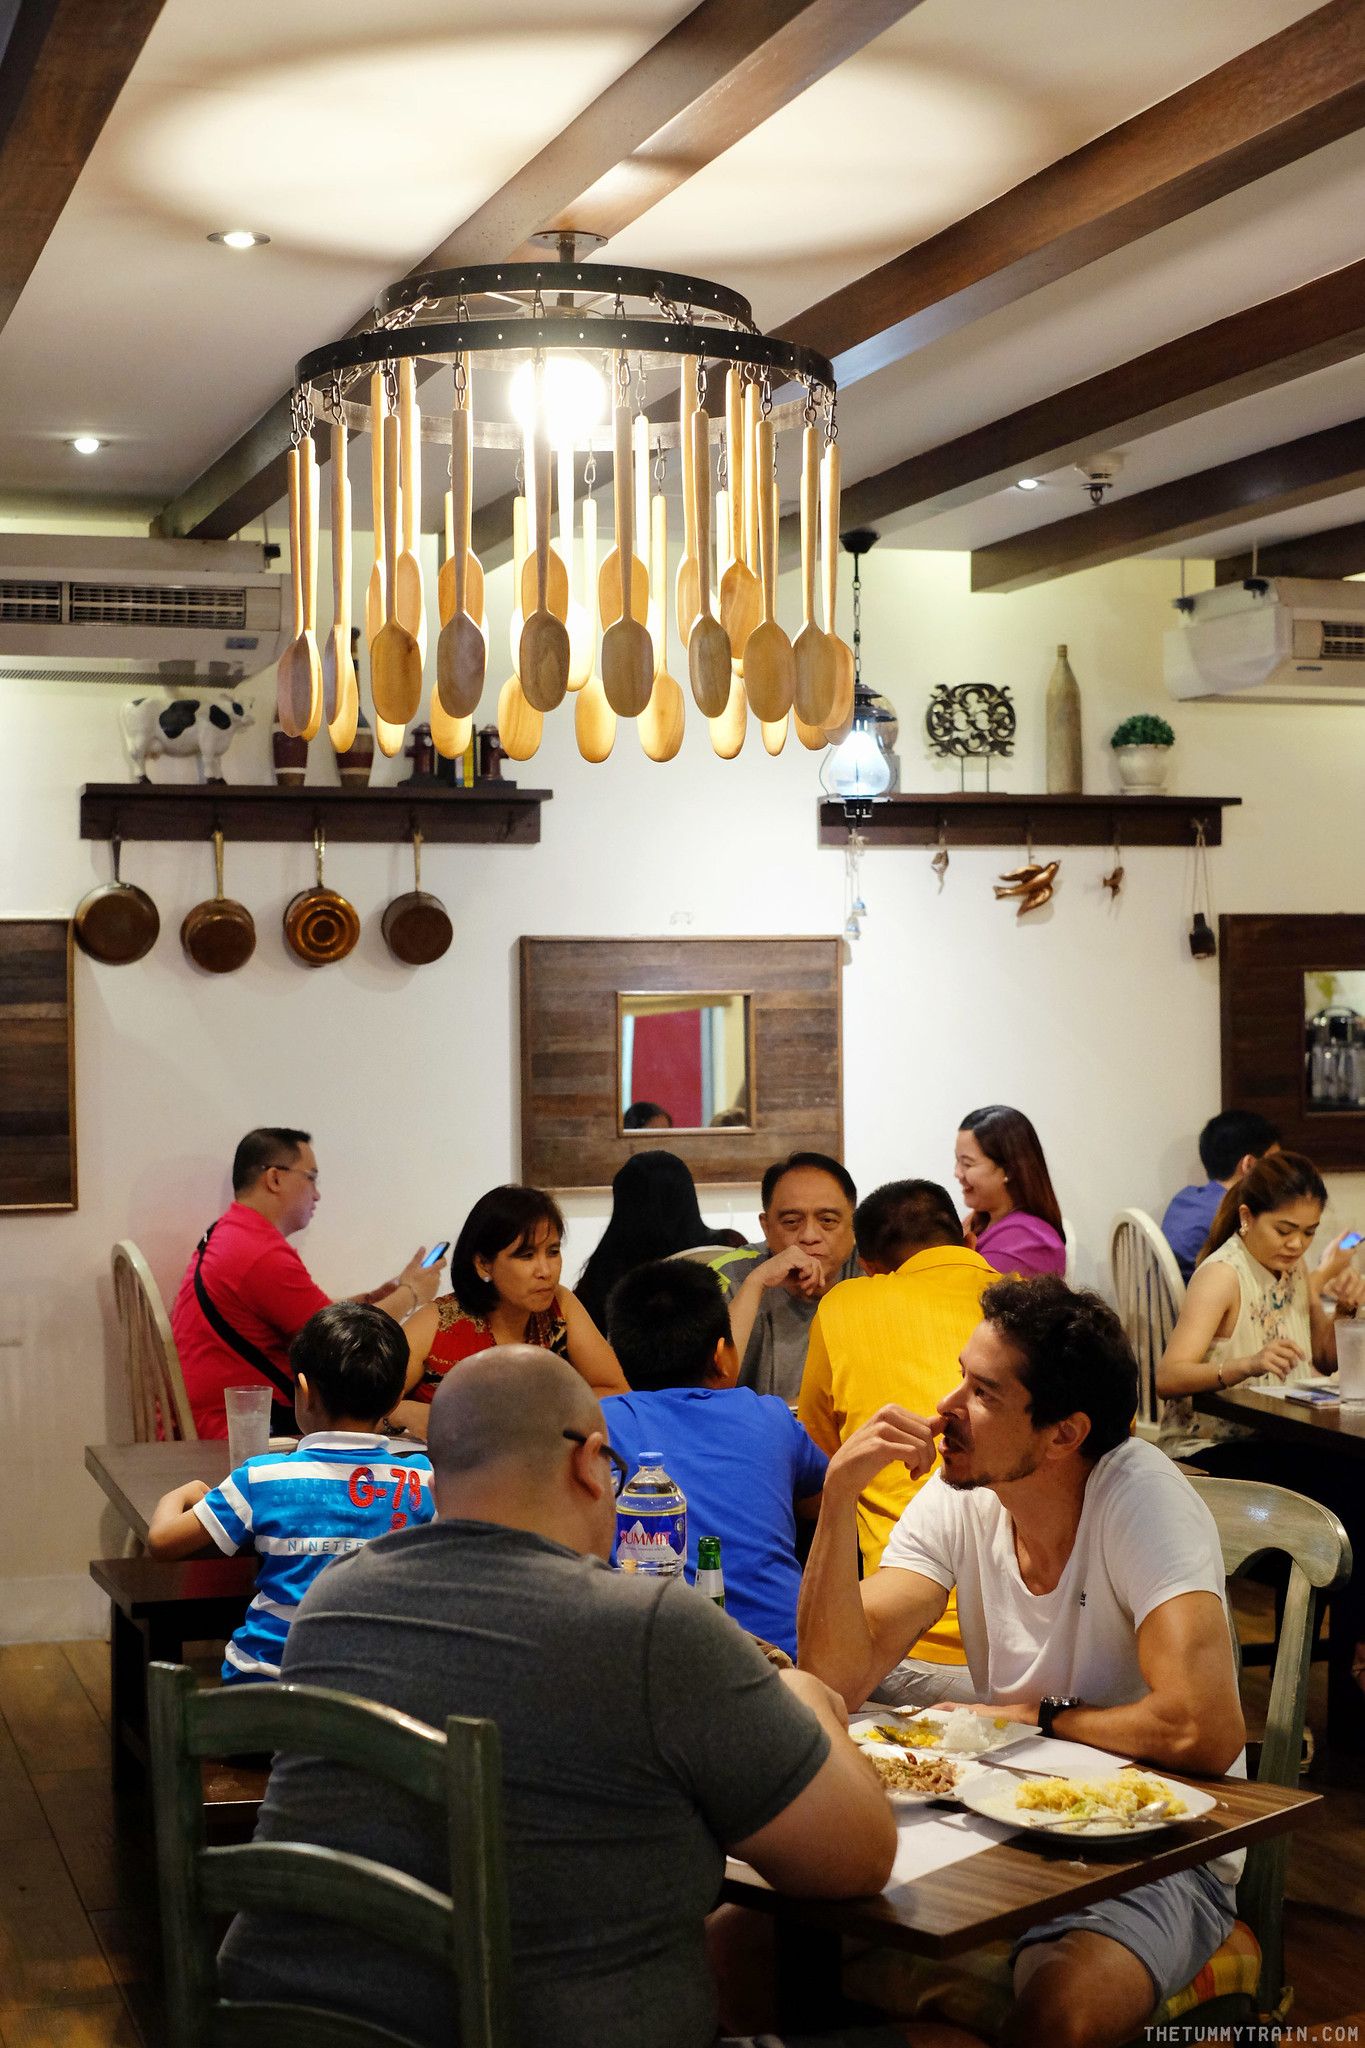 33109084210 3441447b4f k - Have an affordable home-cooked Pinoy meal at Wooden Spoon